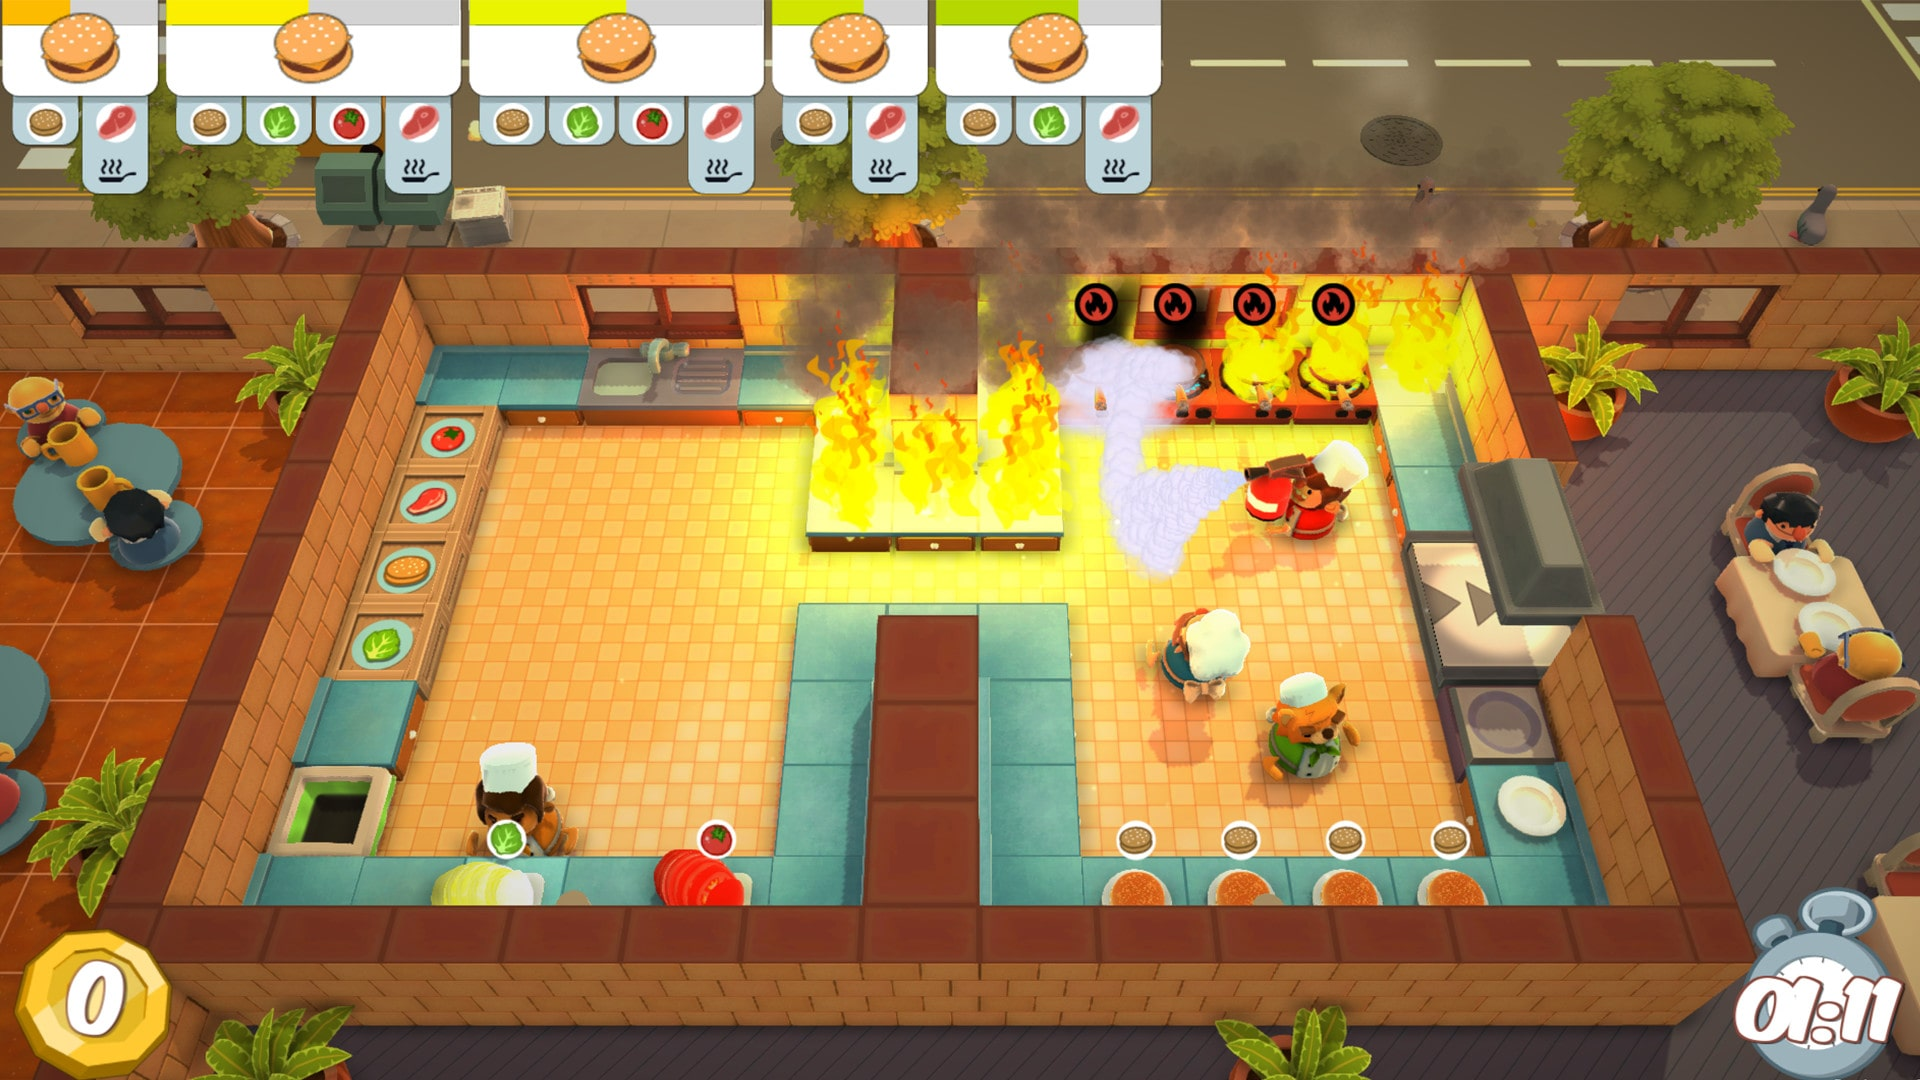 Overcooked could crush some friendships.